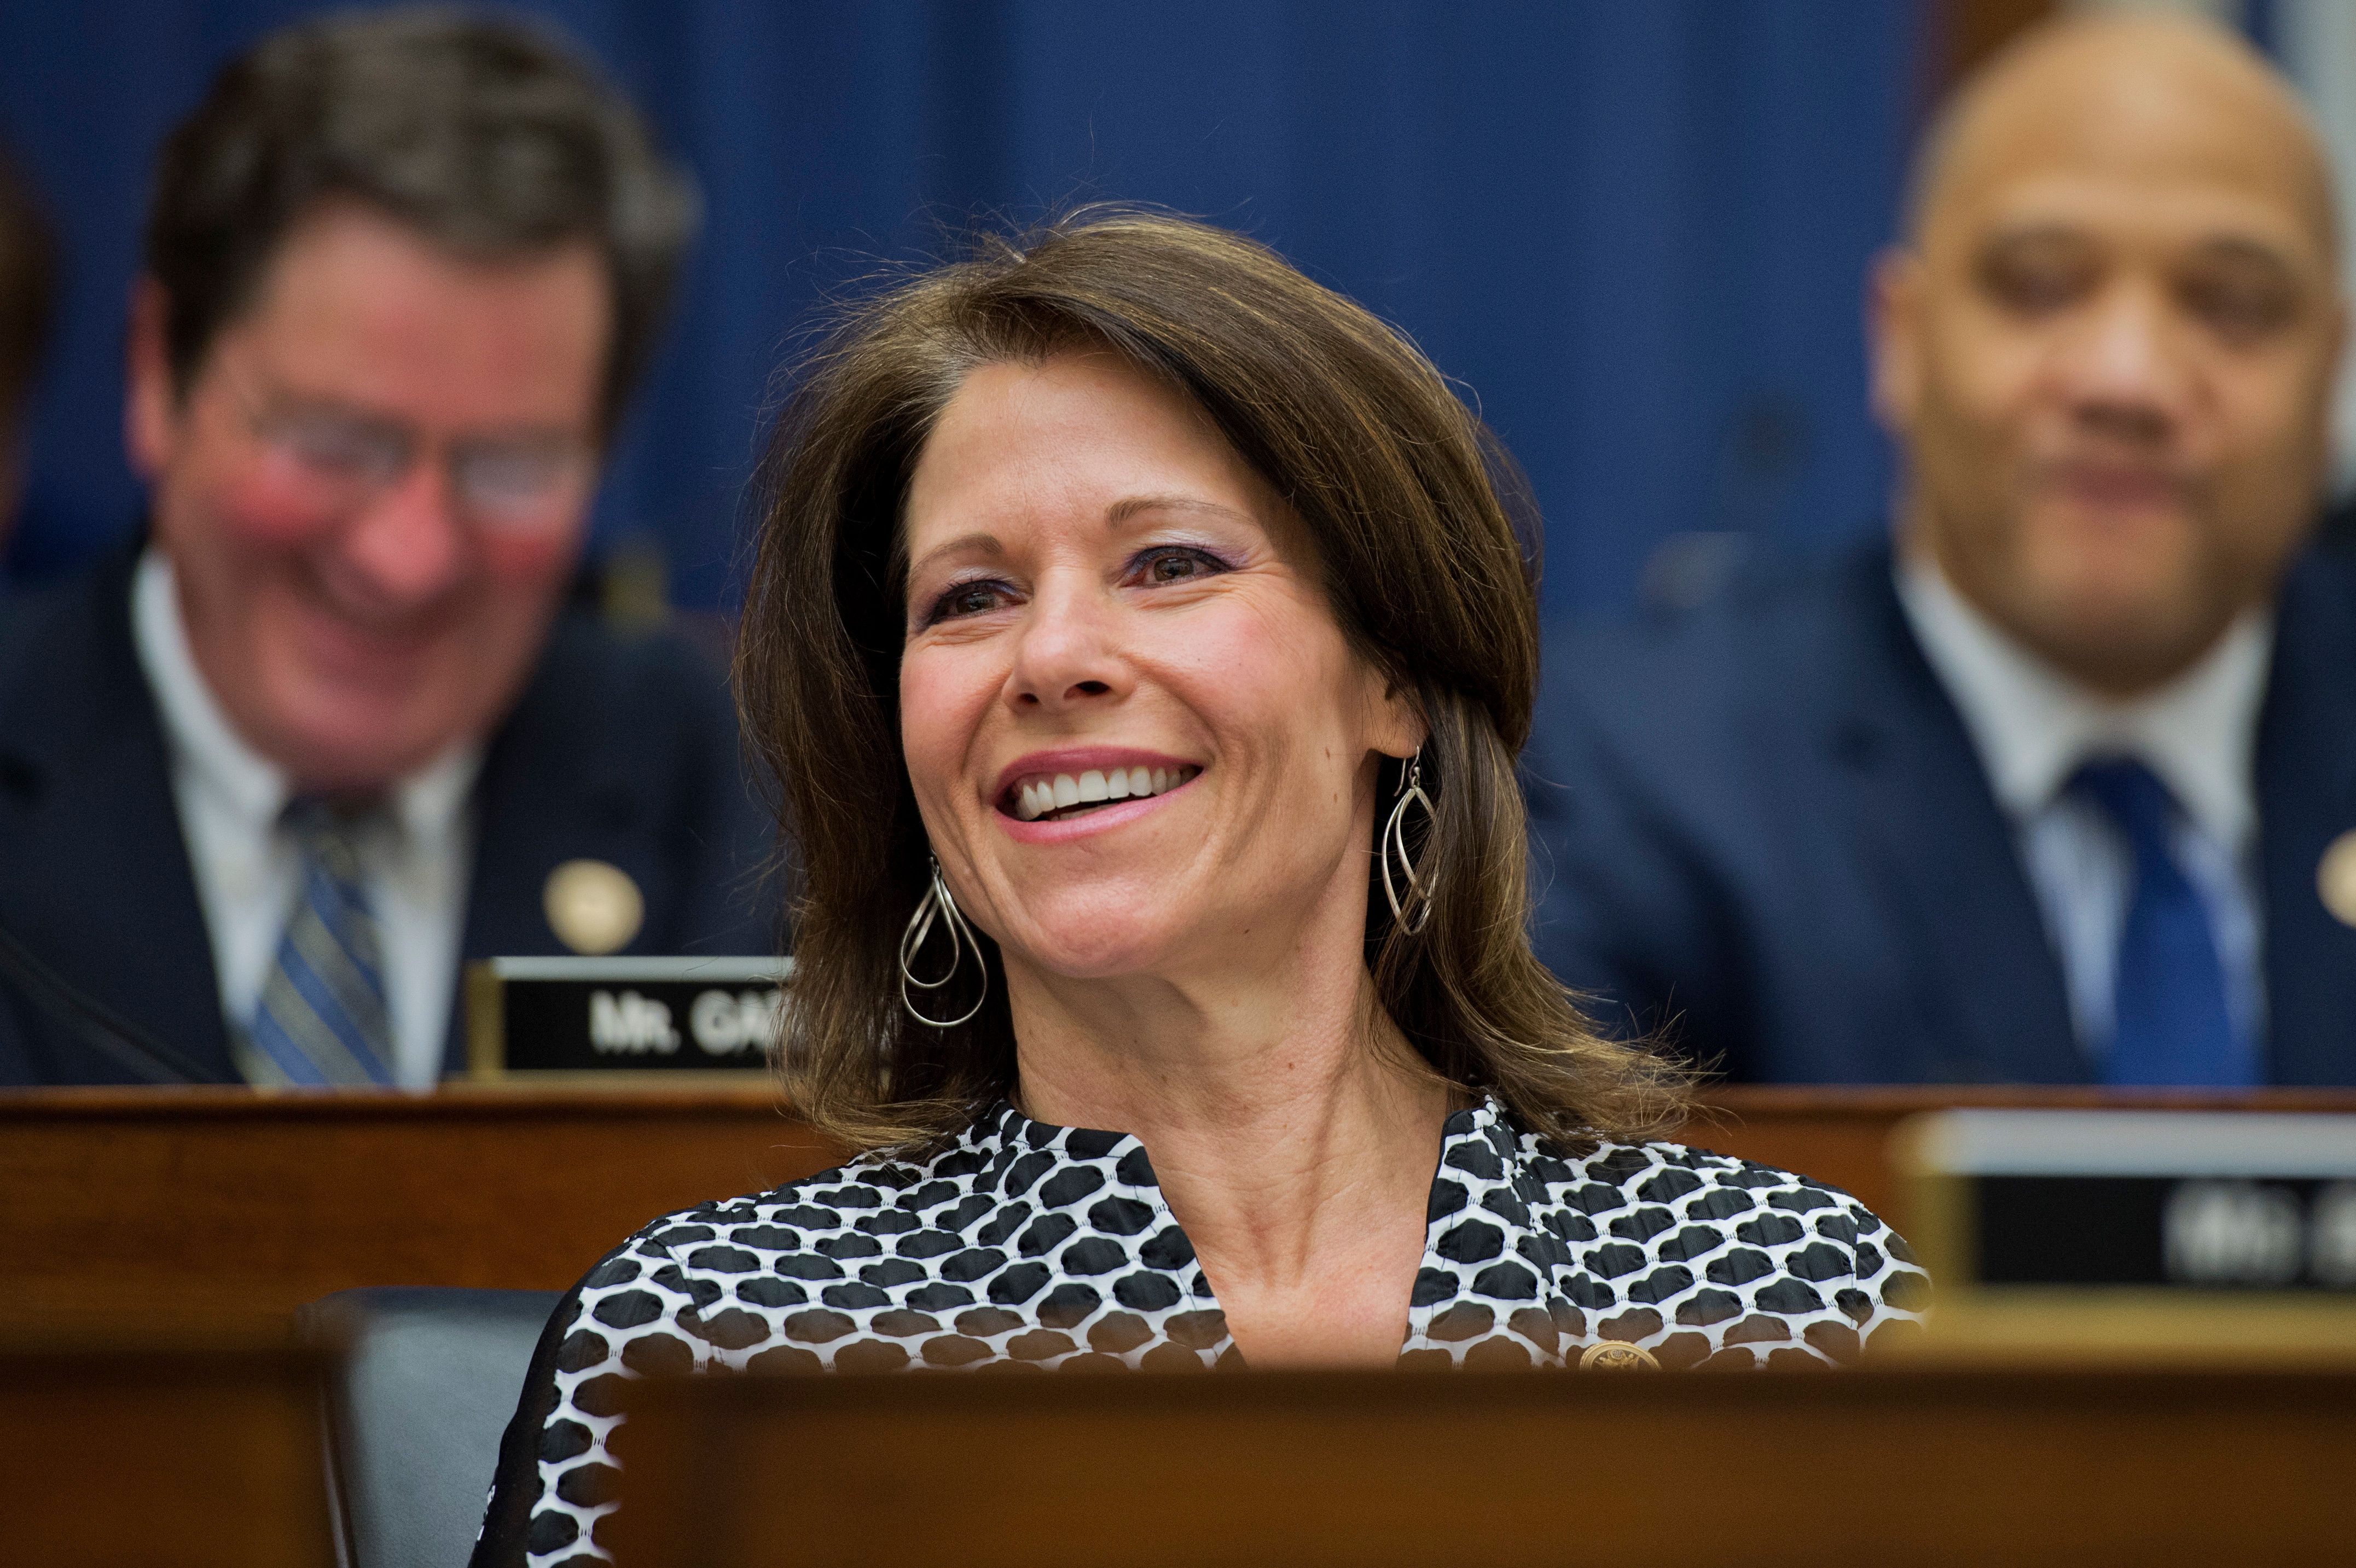 UNITED STATES - FEBRUARY 11: Rep. Cheri Bustos, D-Ill., attends a House Transportation and Infrastructure Committee hearing titled 'Surface Transportation Reauthorization Bill: Laying the Foundation for U.S. Economic Growth and Job Creation Part I,' in Rayburn Building, February 11, 2015. Secretary of Transportation Anthony Foxx testified.(Photo By Tom Williams/CQ Roll Call)